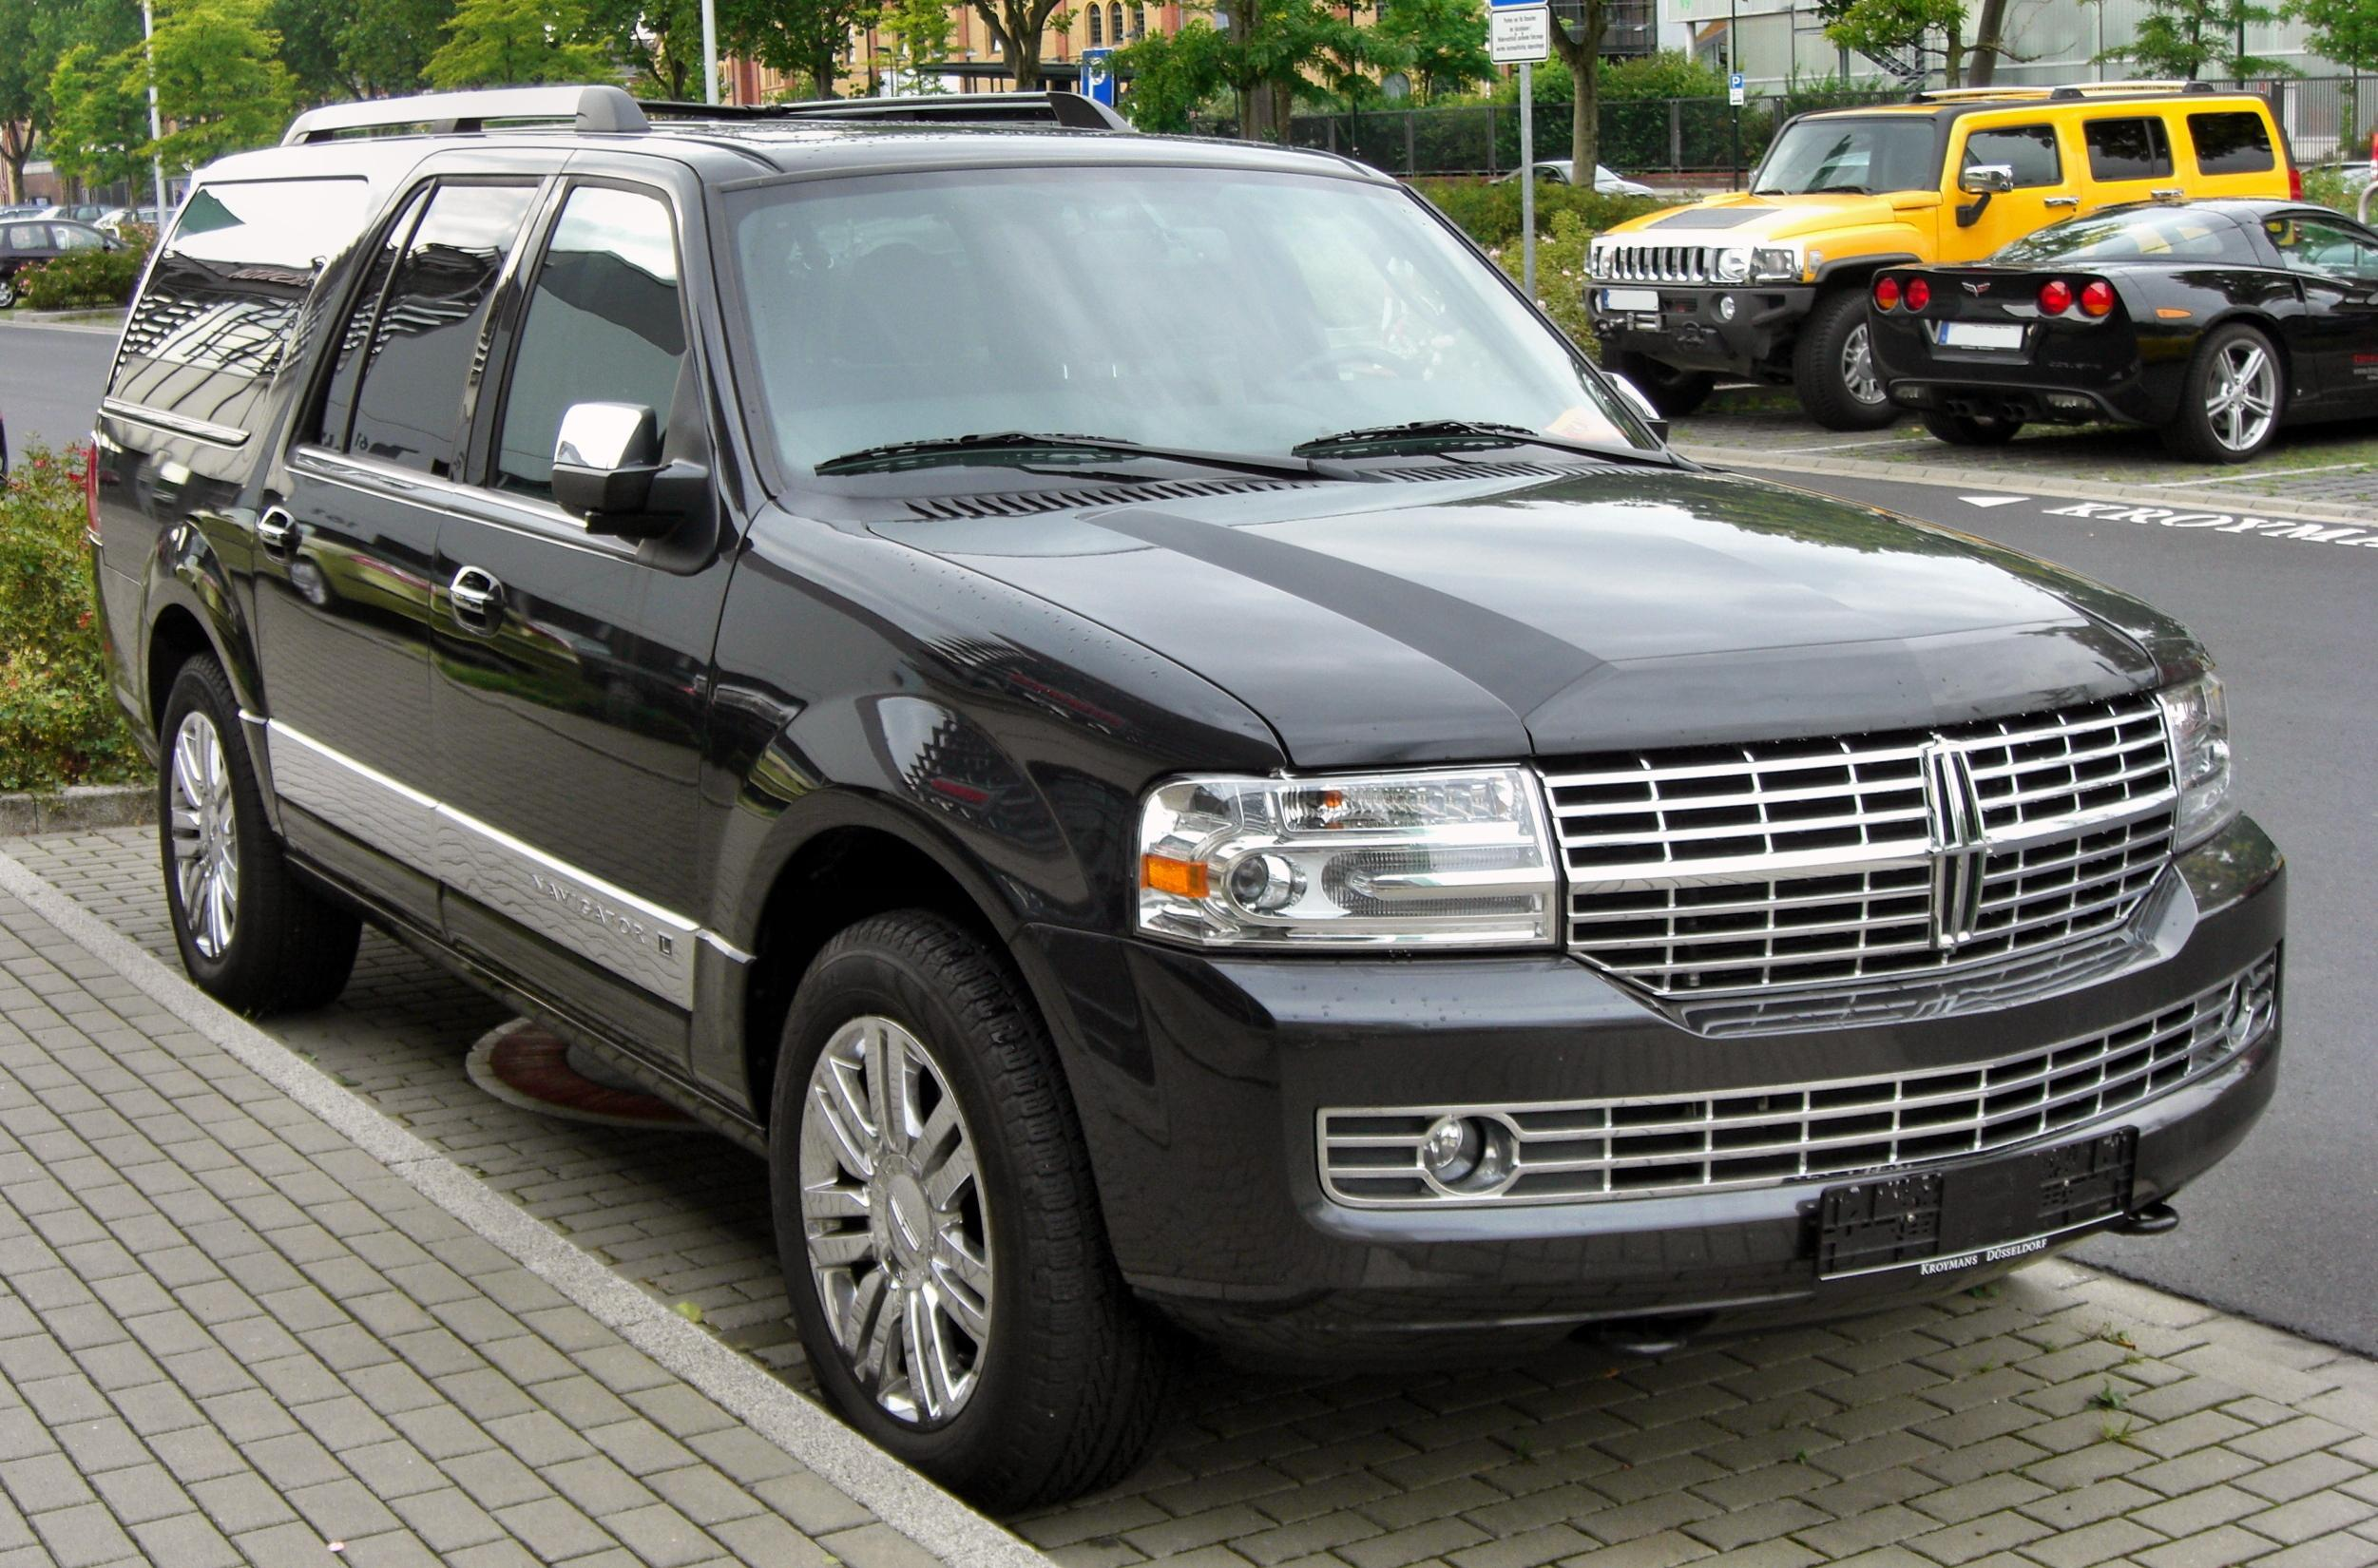 File:Lincoln Navigator front.JPG - Wikimedia Commons